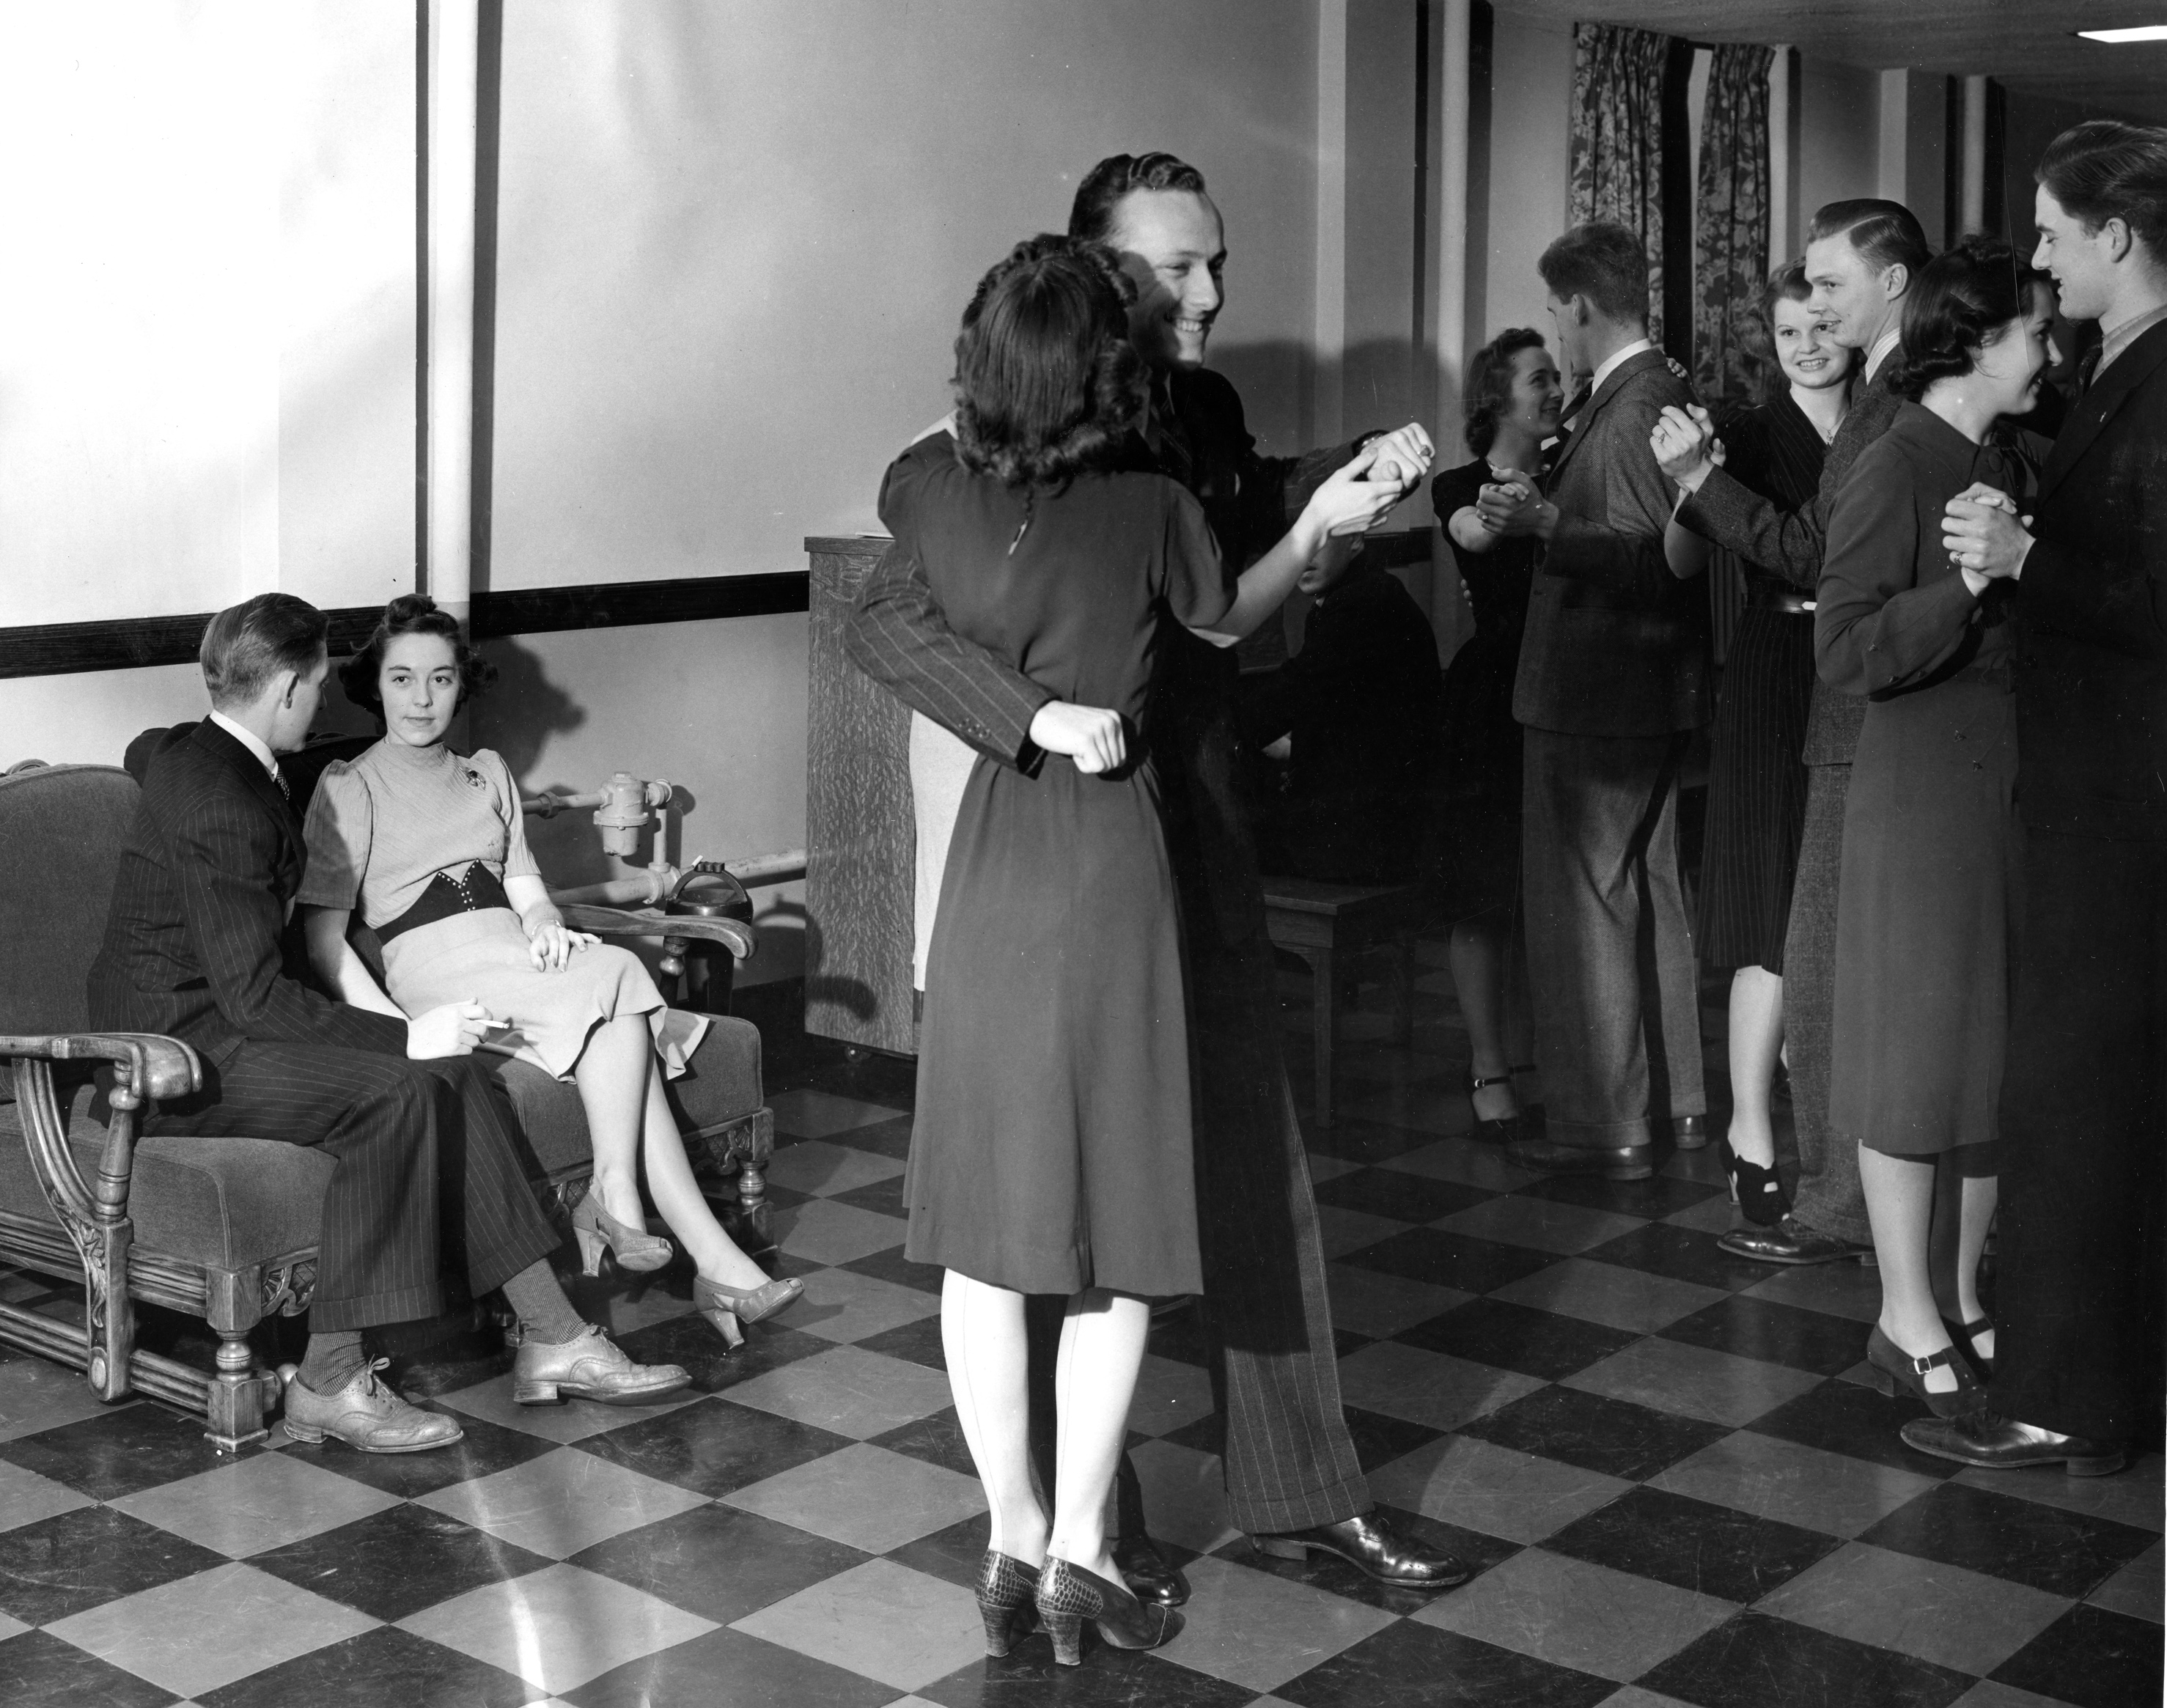 Students have a dance at their dorm, undated